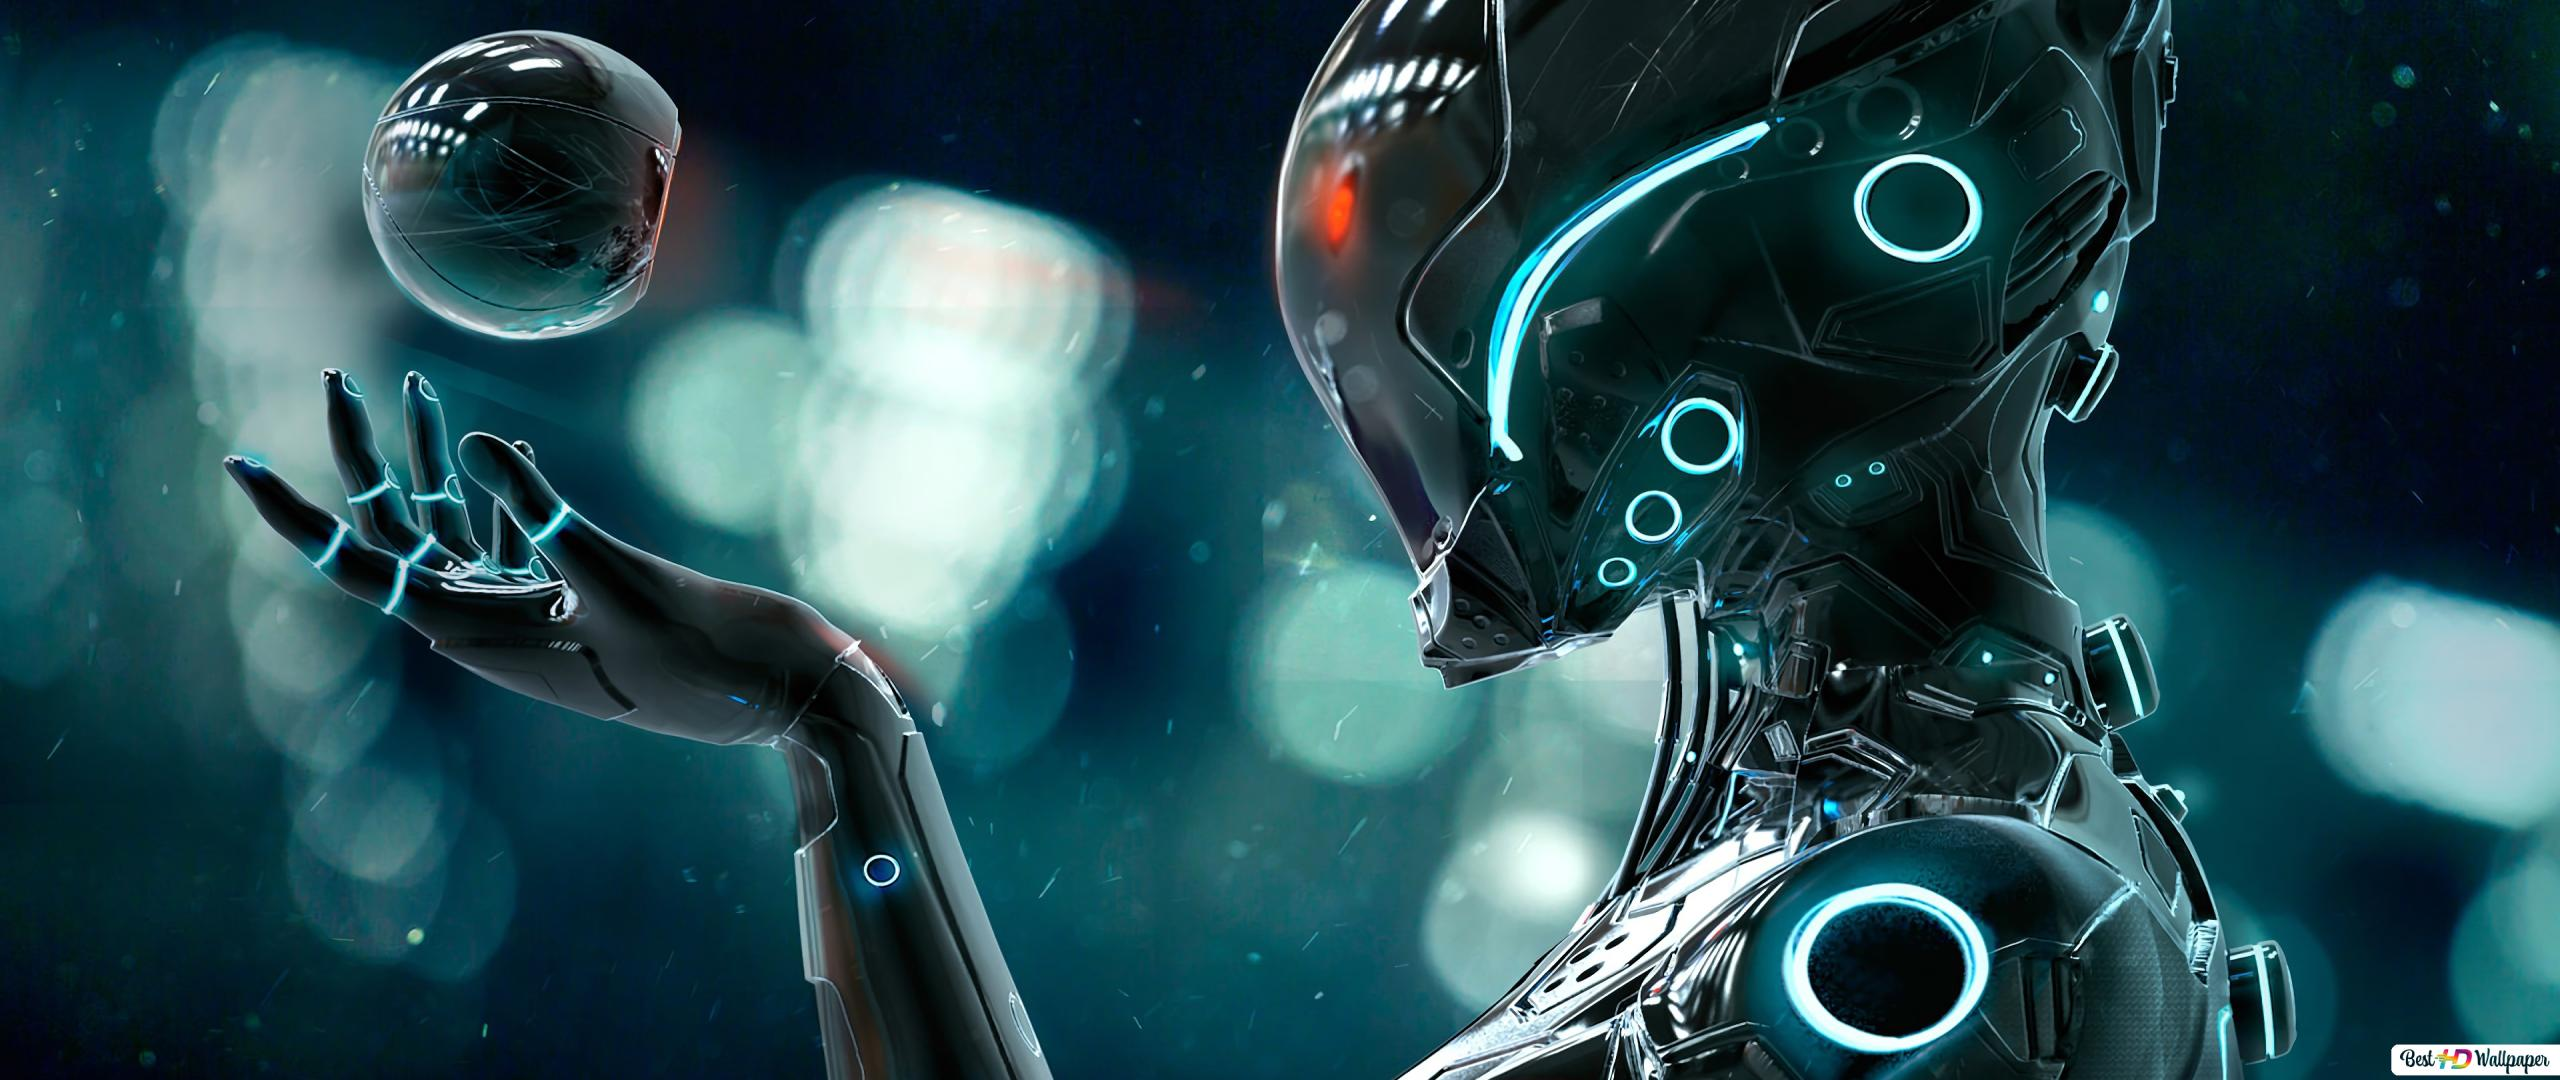 Android Robot Hd Wallpaper Download